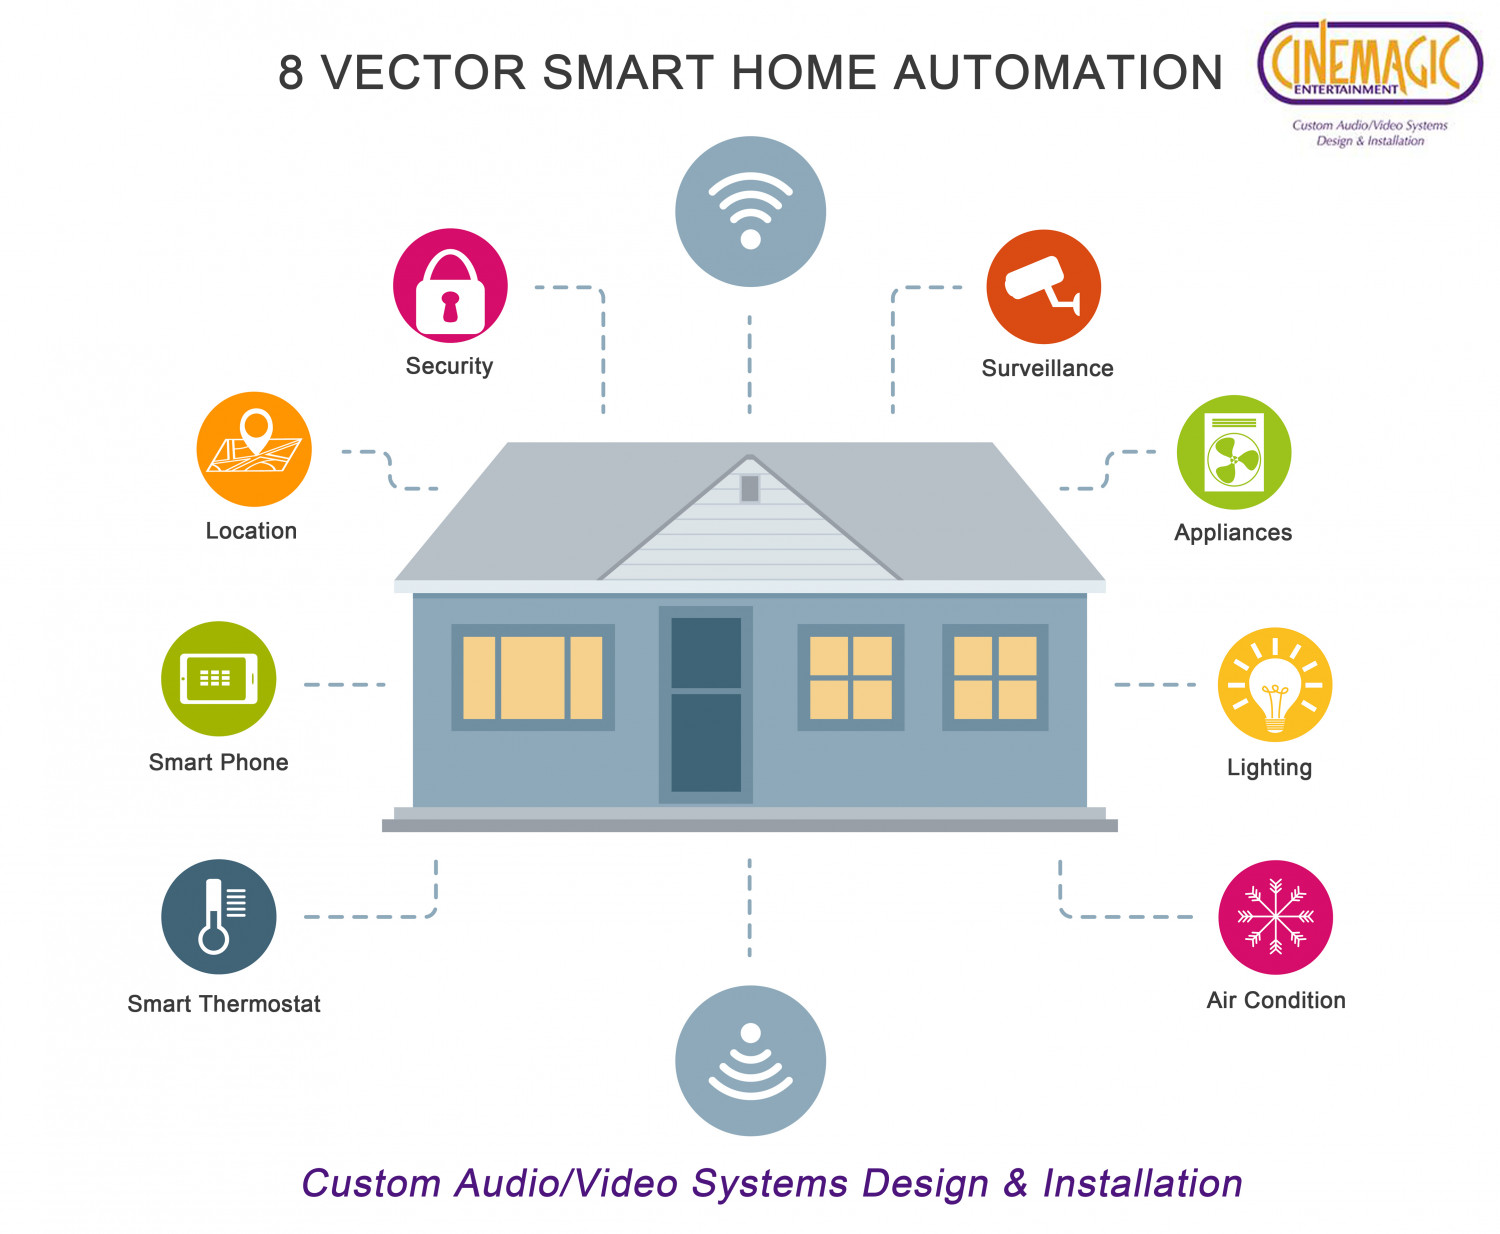 8 Vectors of Smart Home Automation Service | Visual.ly